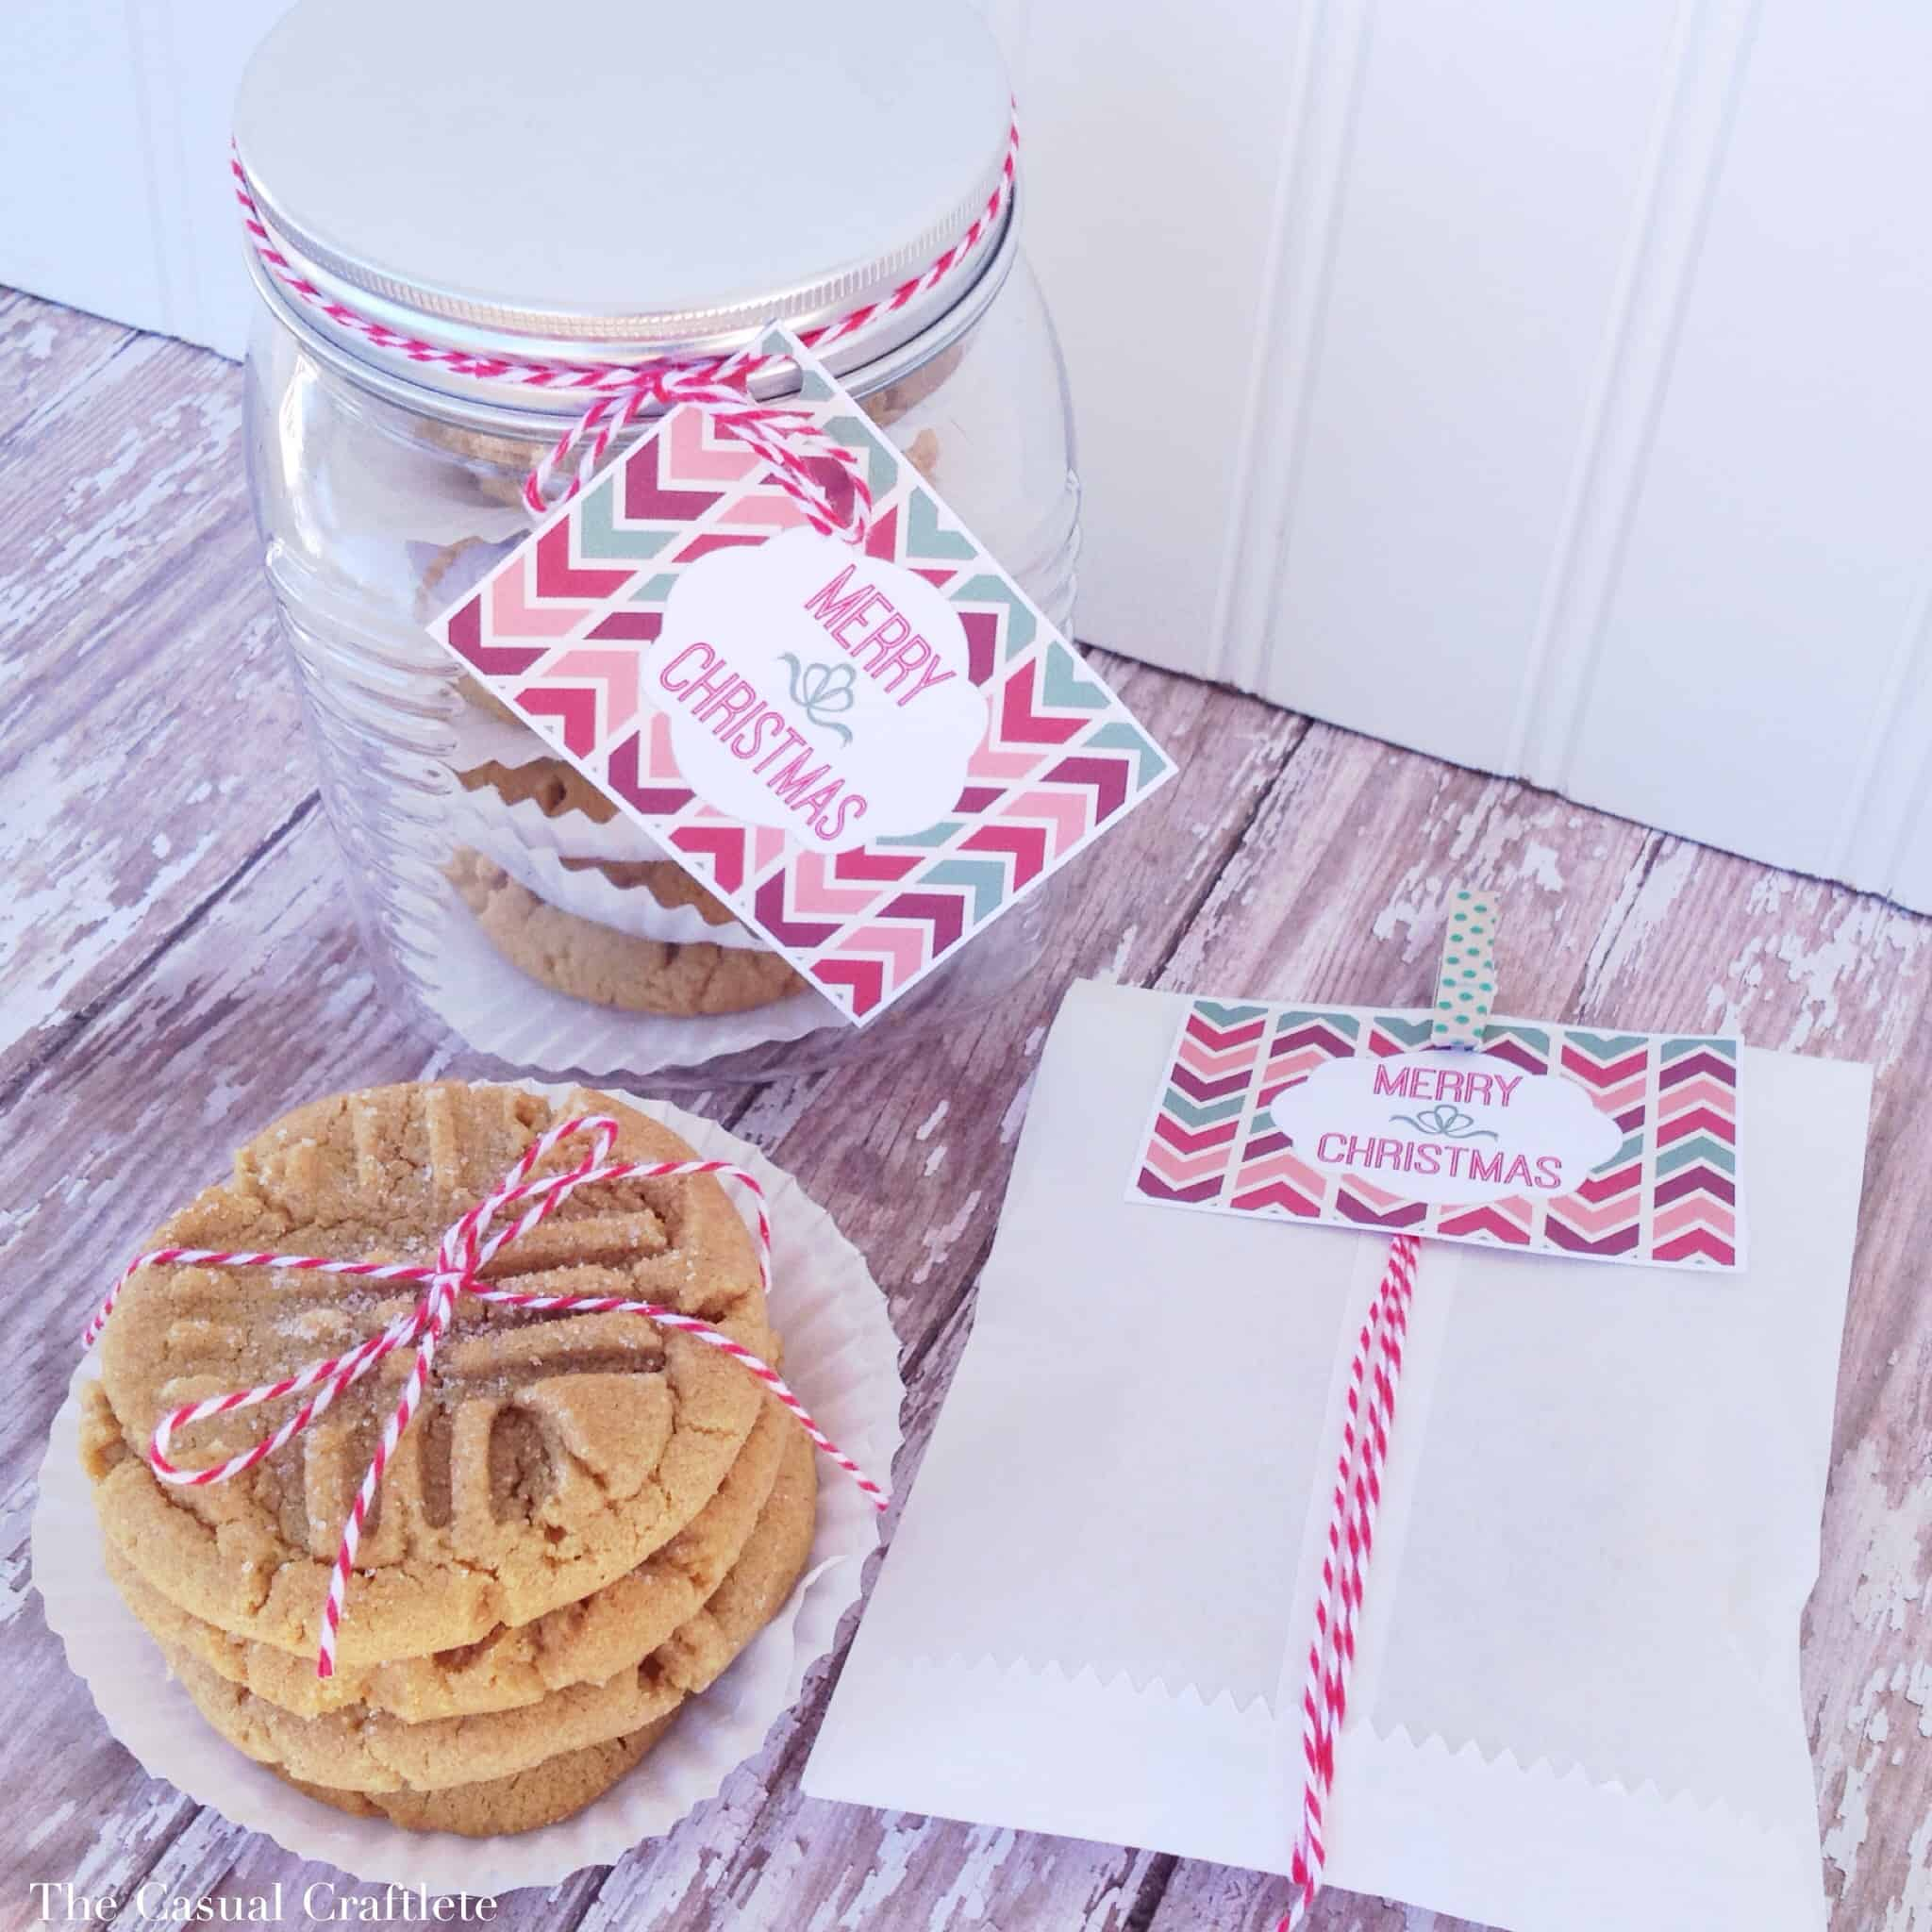 Best Ever Peanut Butter Cookie Recipe Plus {Free Printable Merry Christmas Tags}